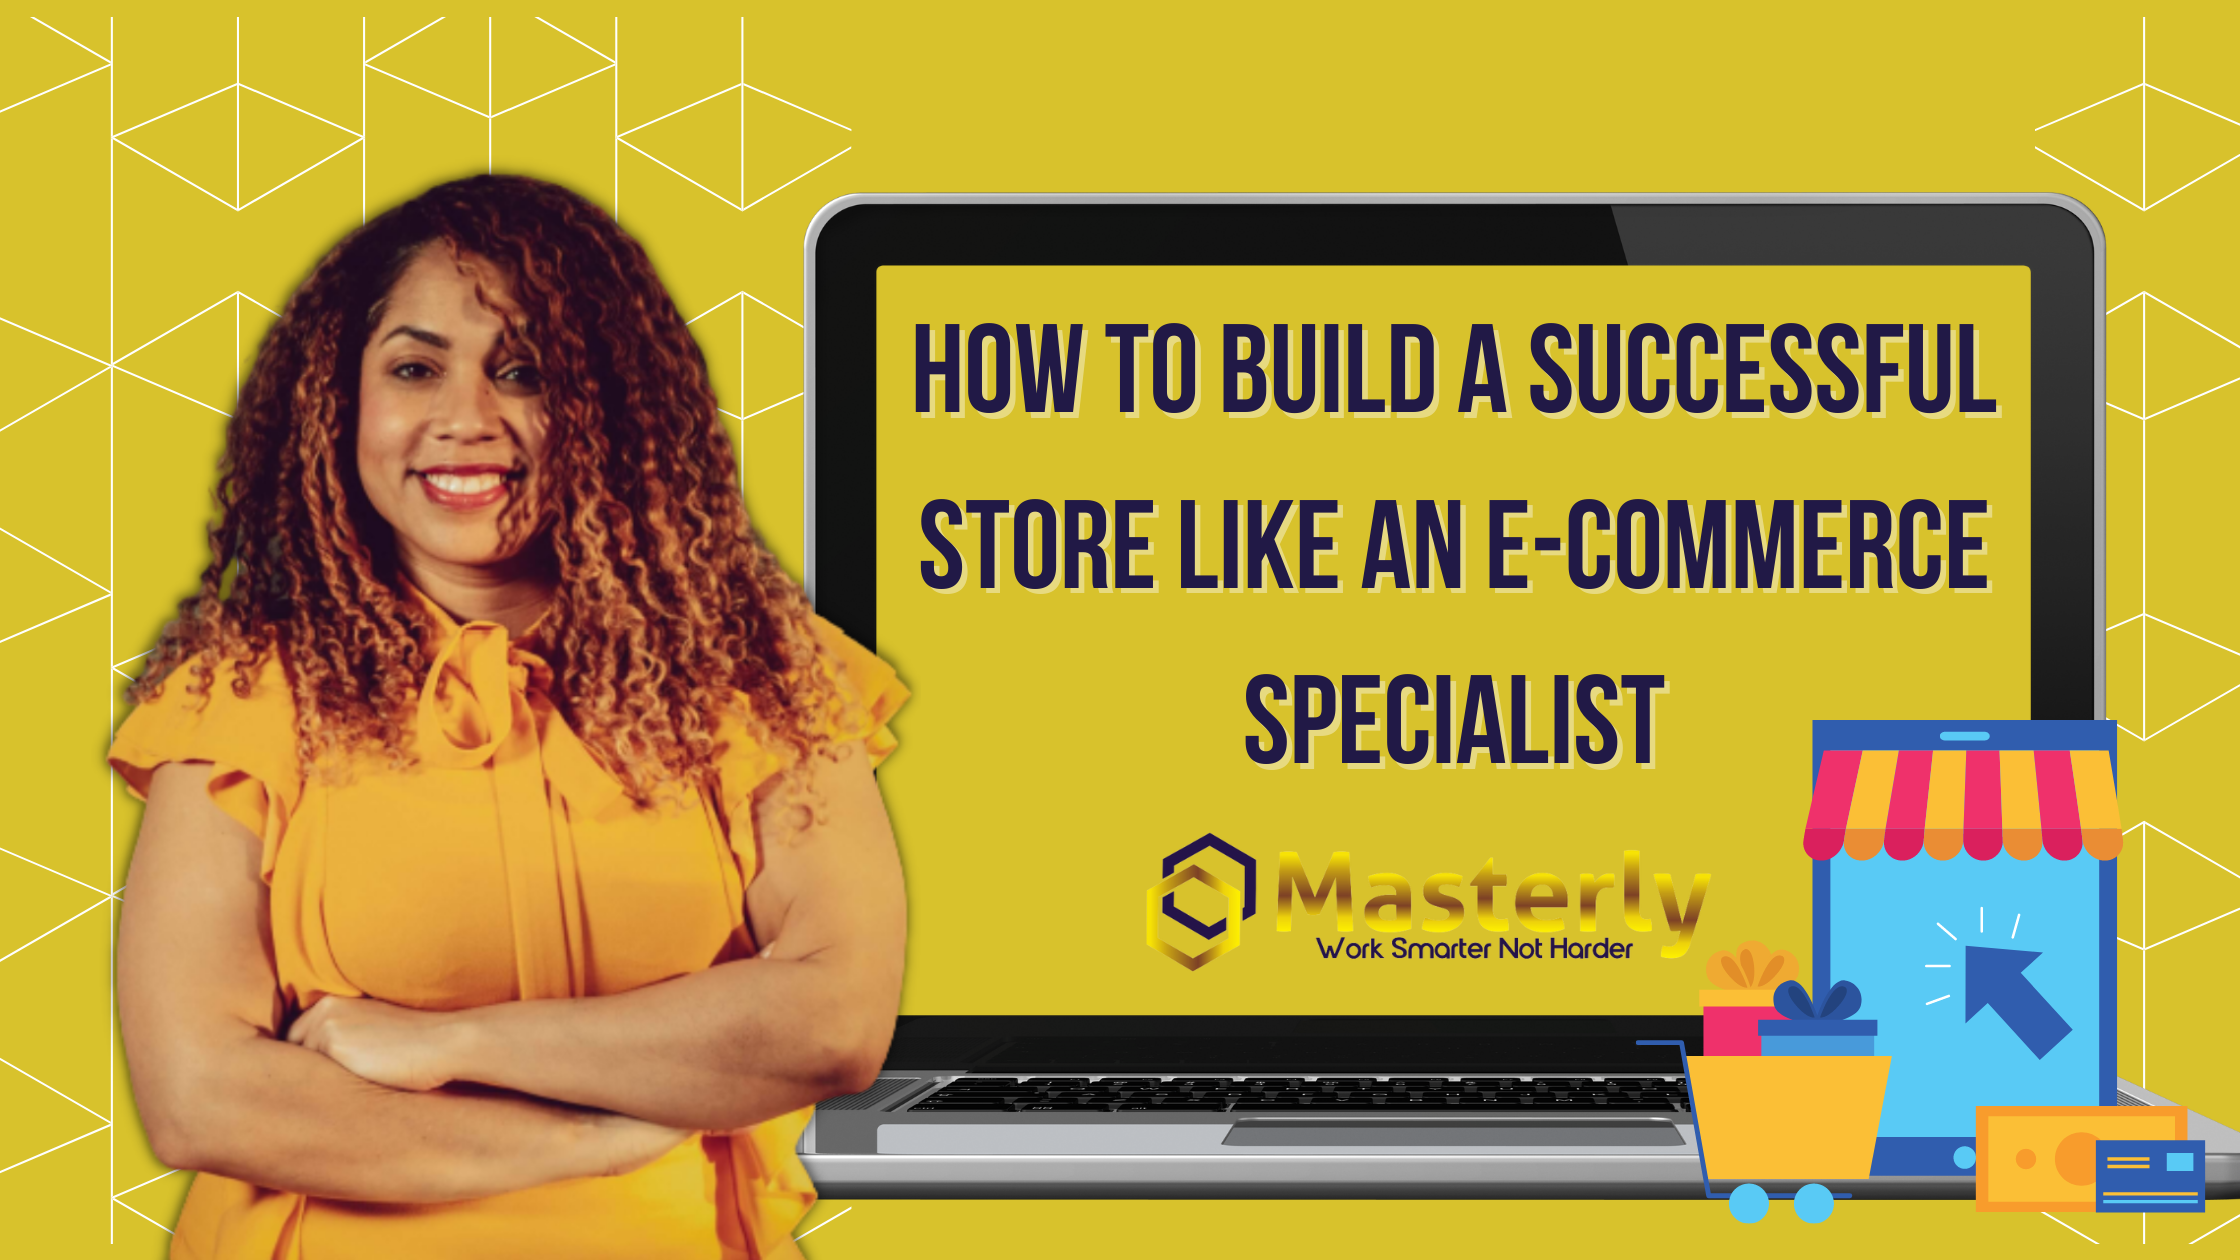 How to build a successful store like an e-commerce specialist